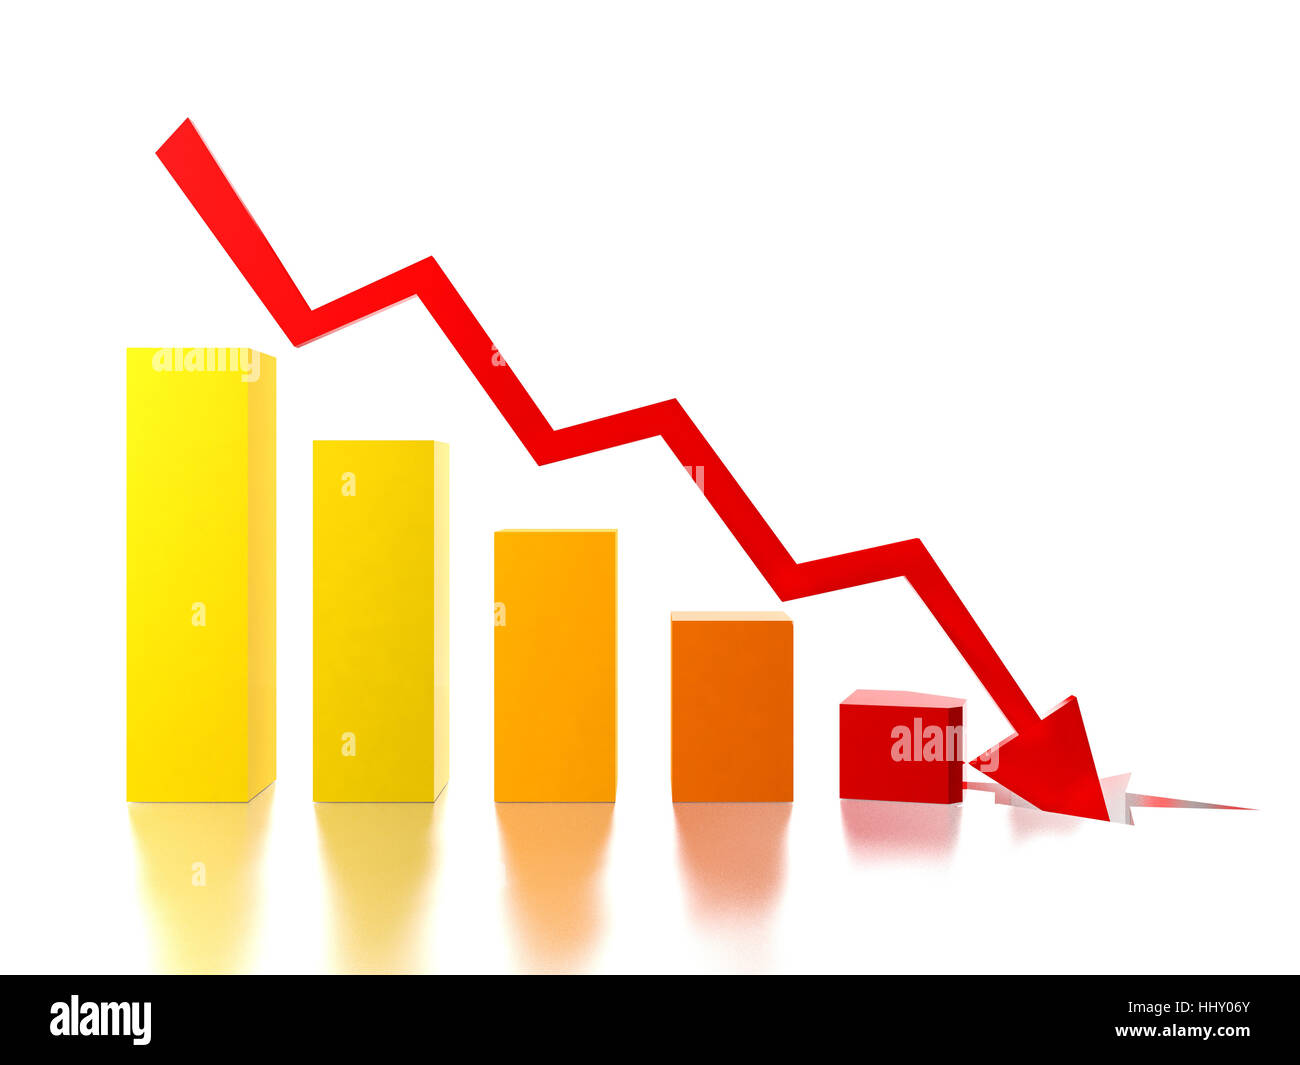 Bar chart low index stock photo royalty free image 131514627 alamy bar chart low index biocorpaavc Gallery